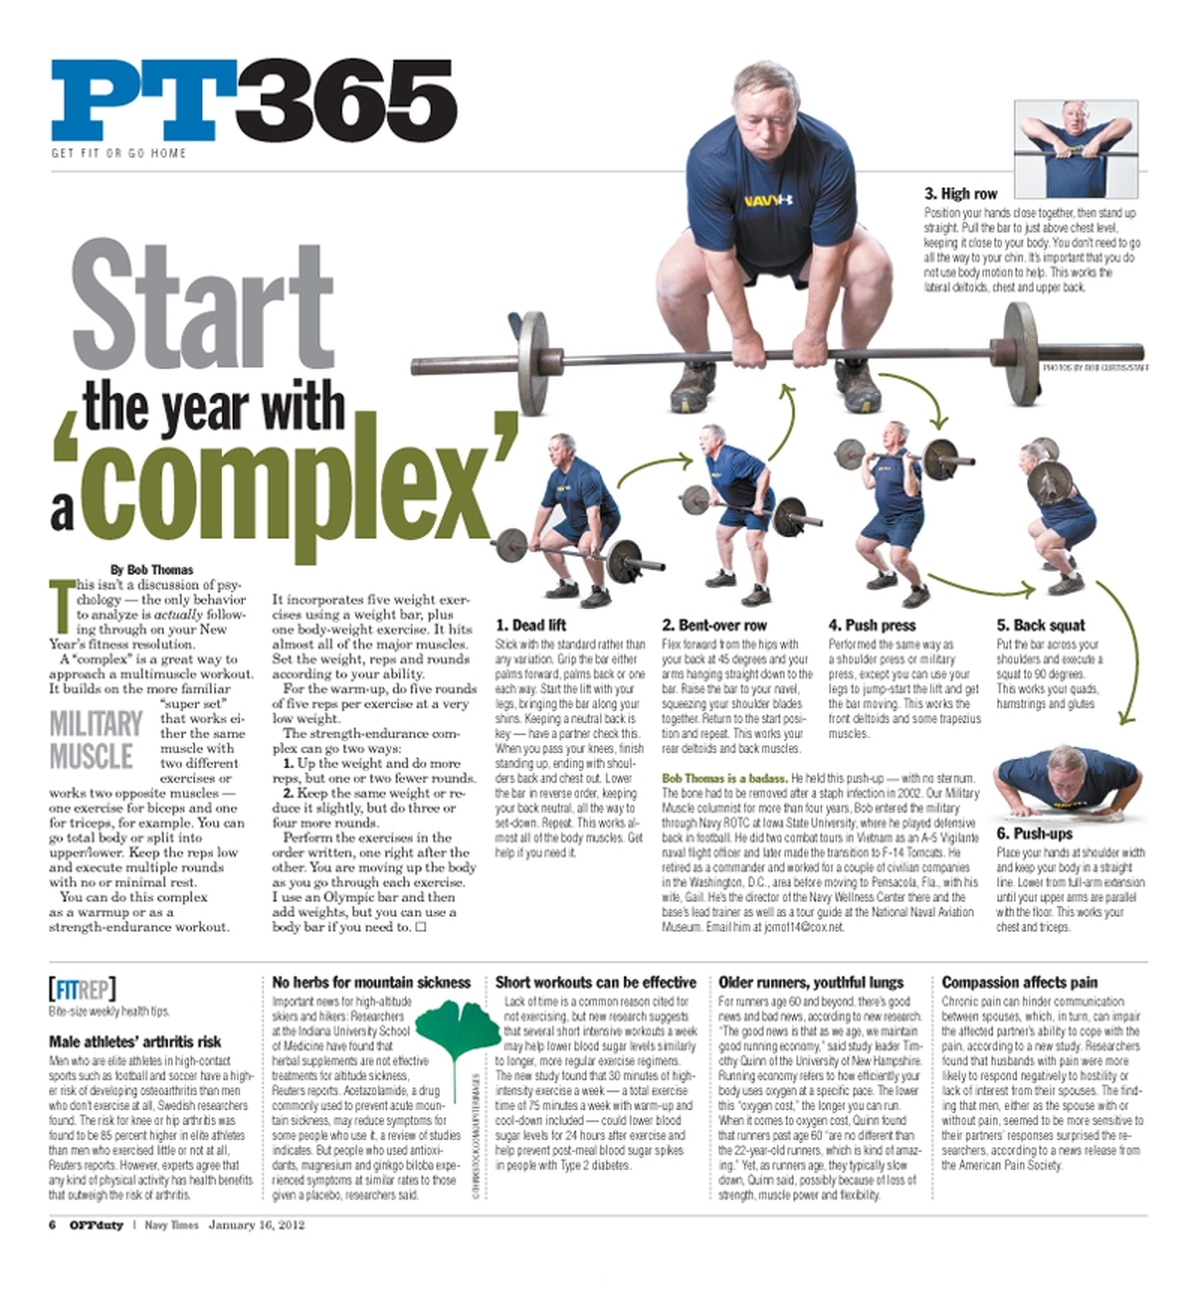 Start the year with a 'complex'